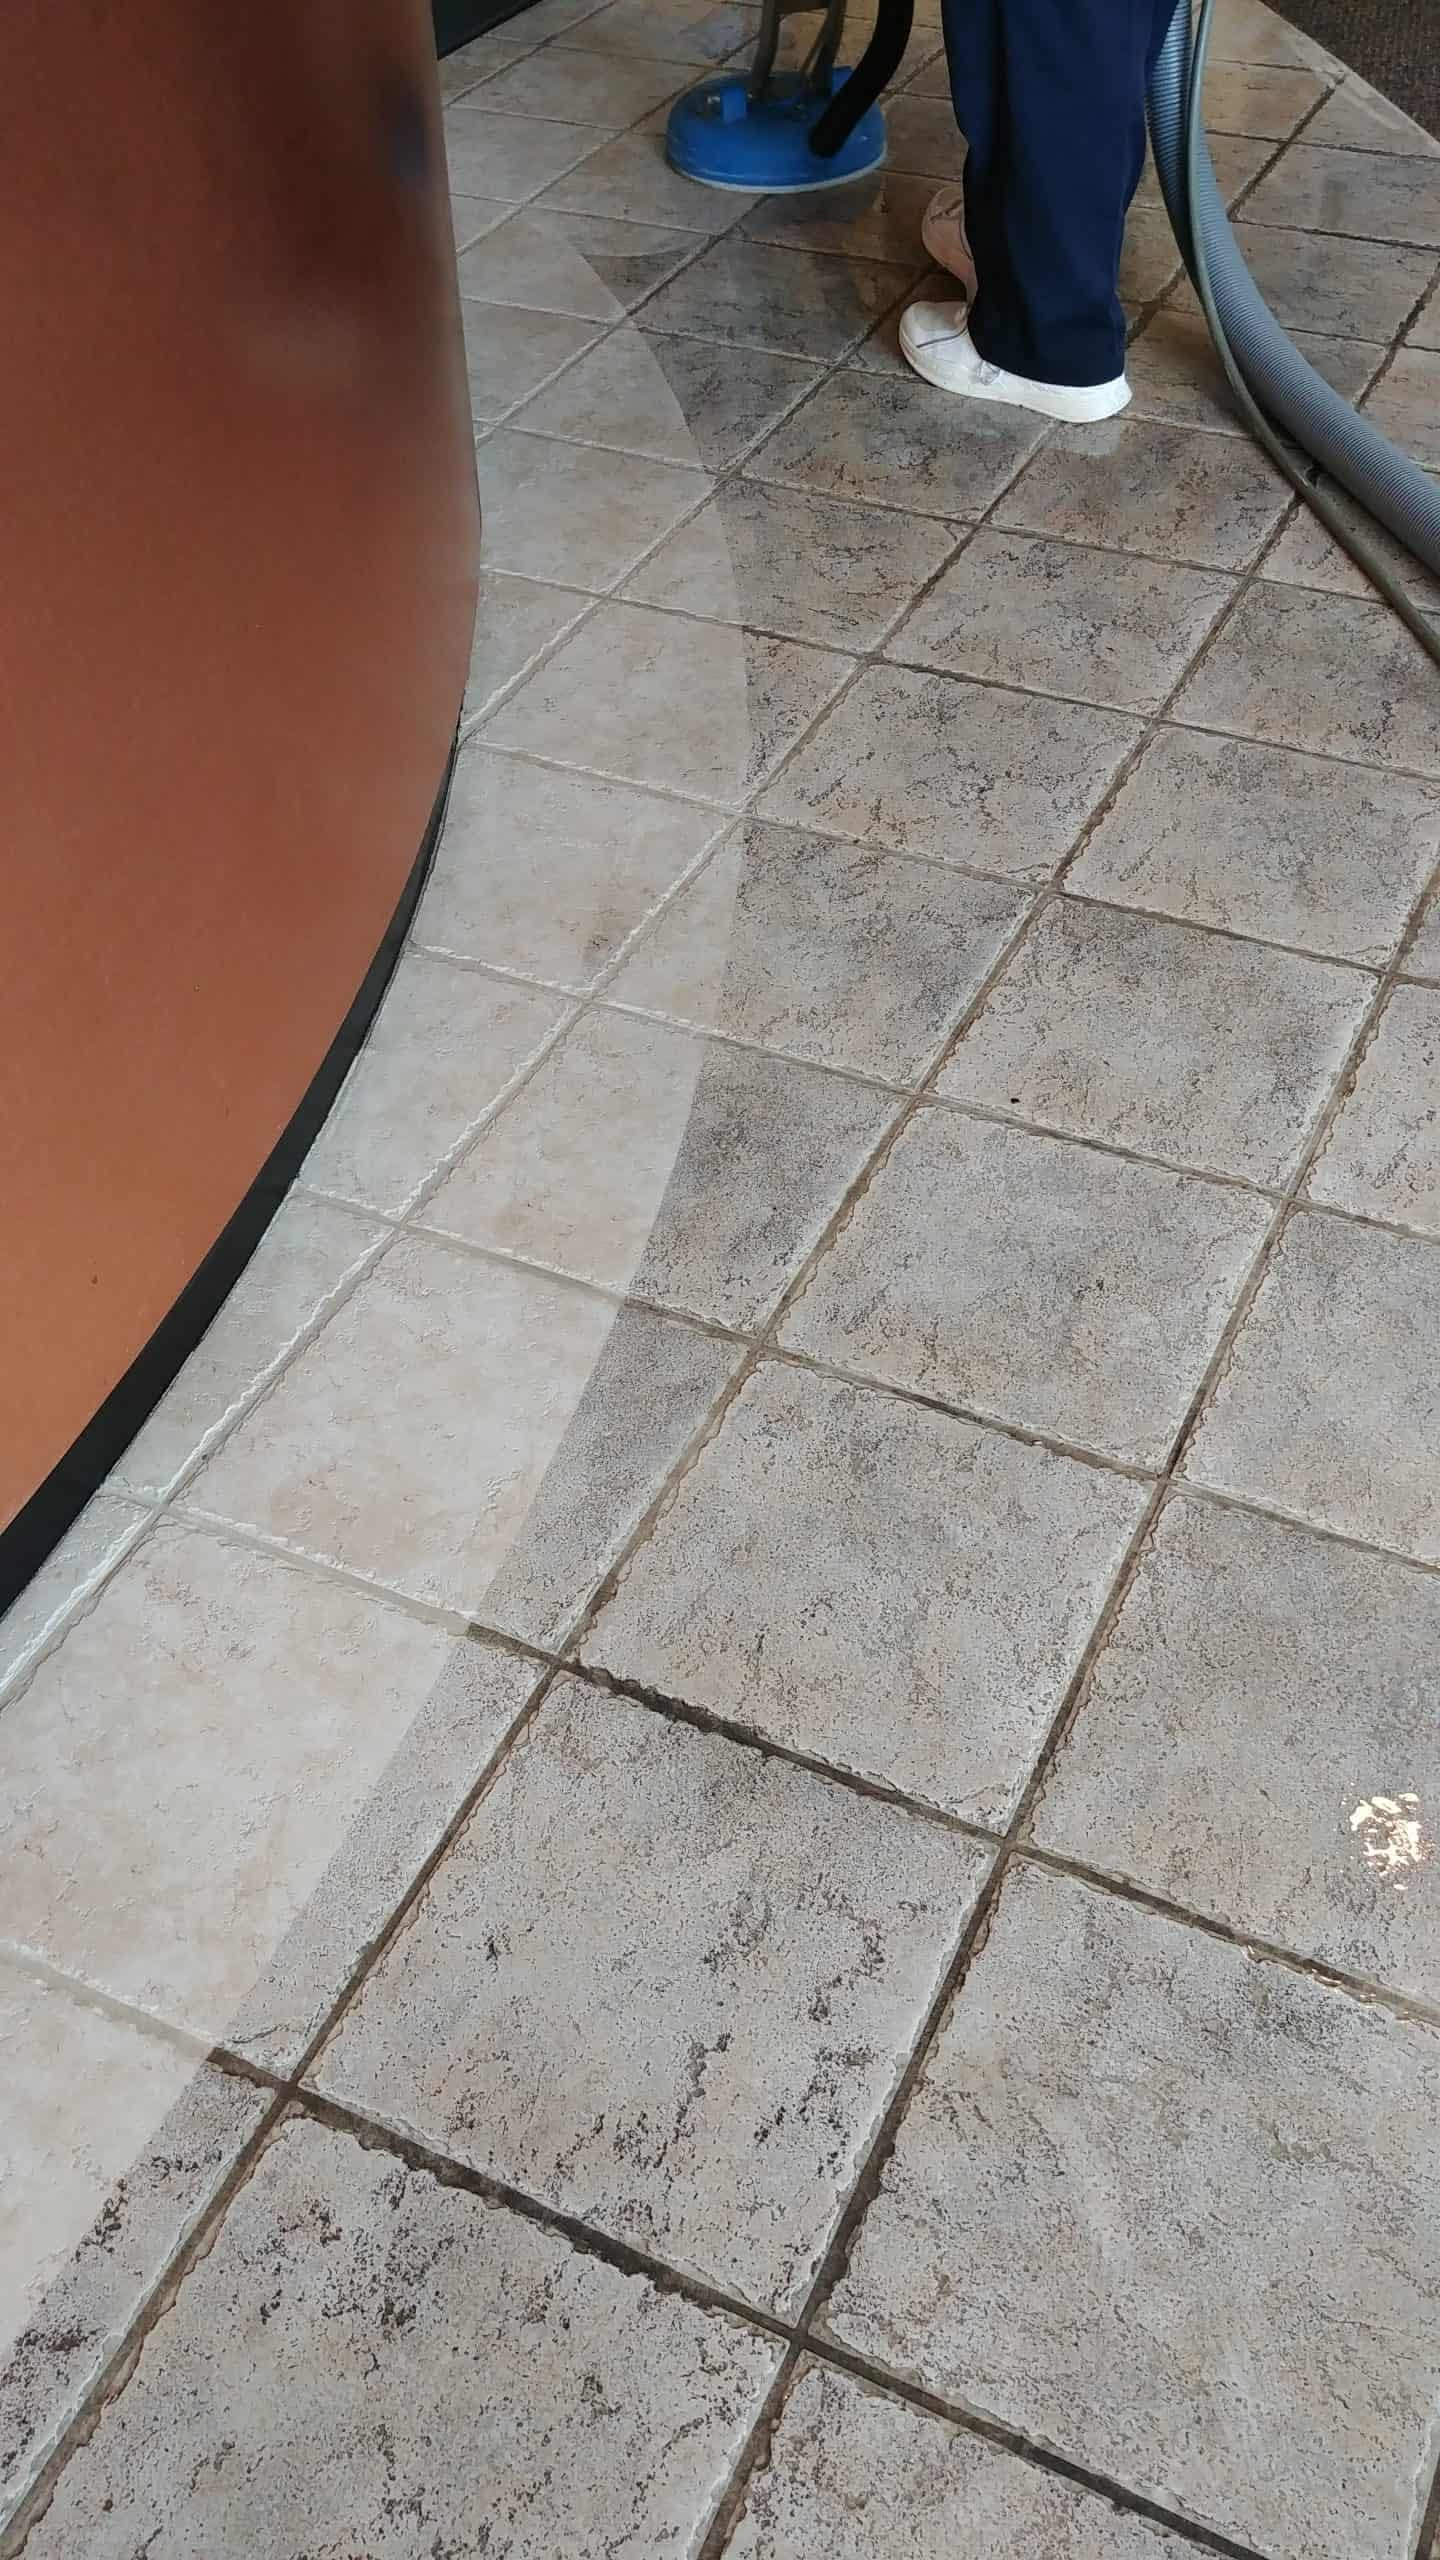 Tile and grout cleaning in Blue Bell, PA